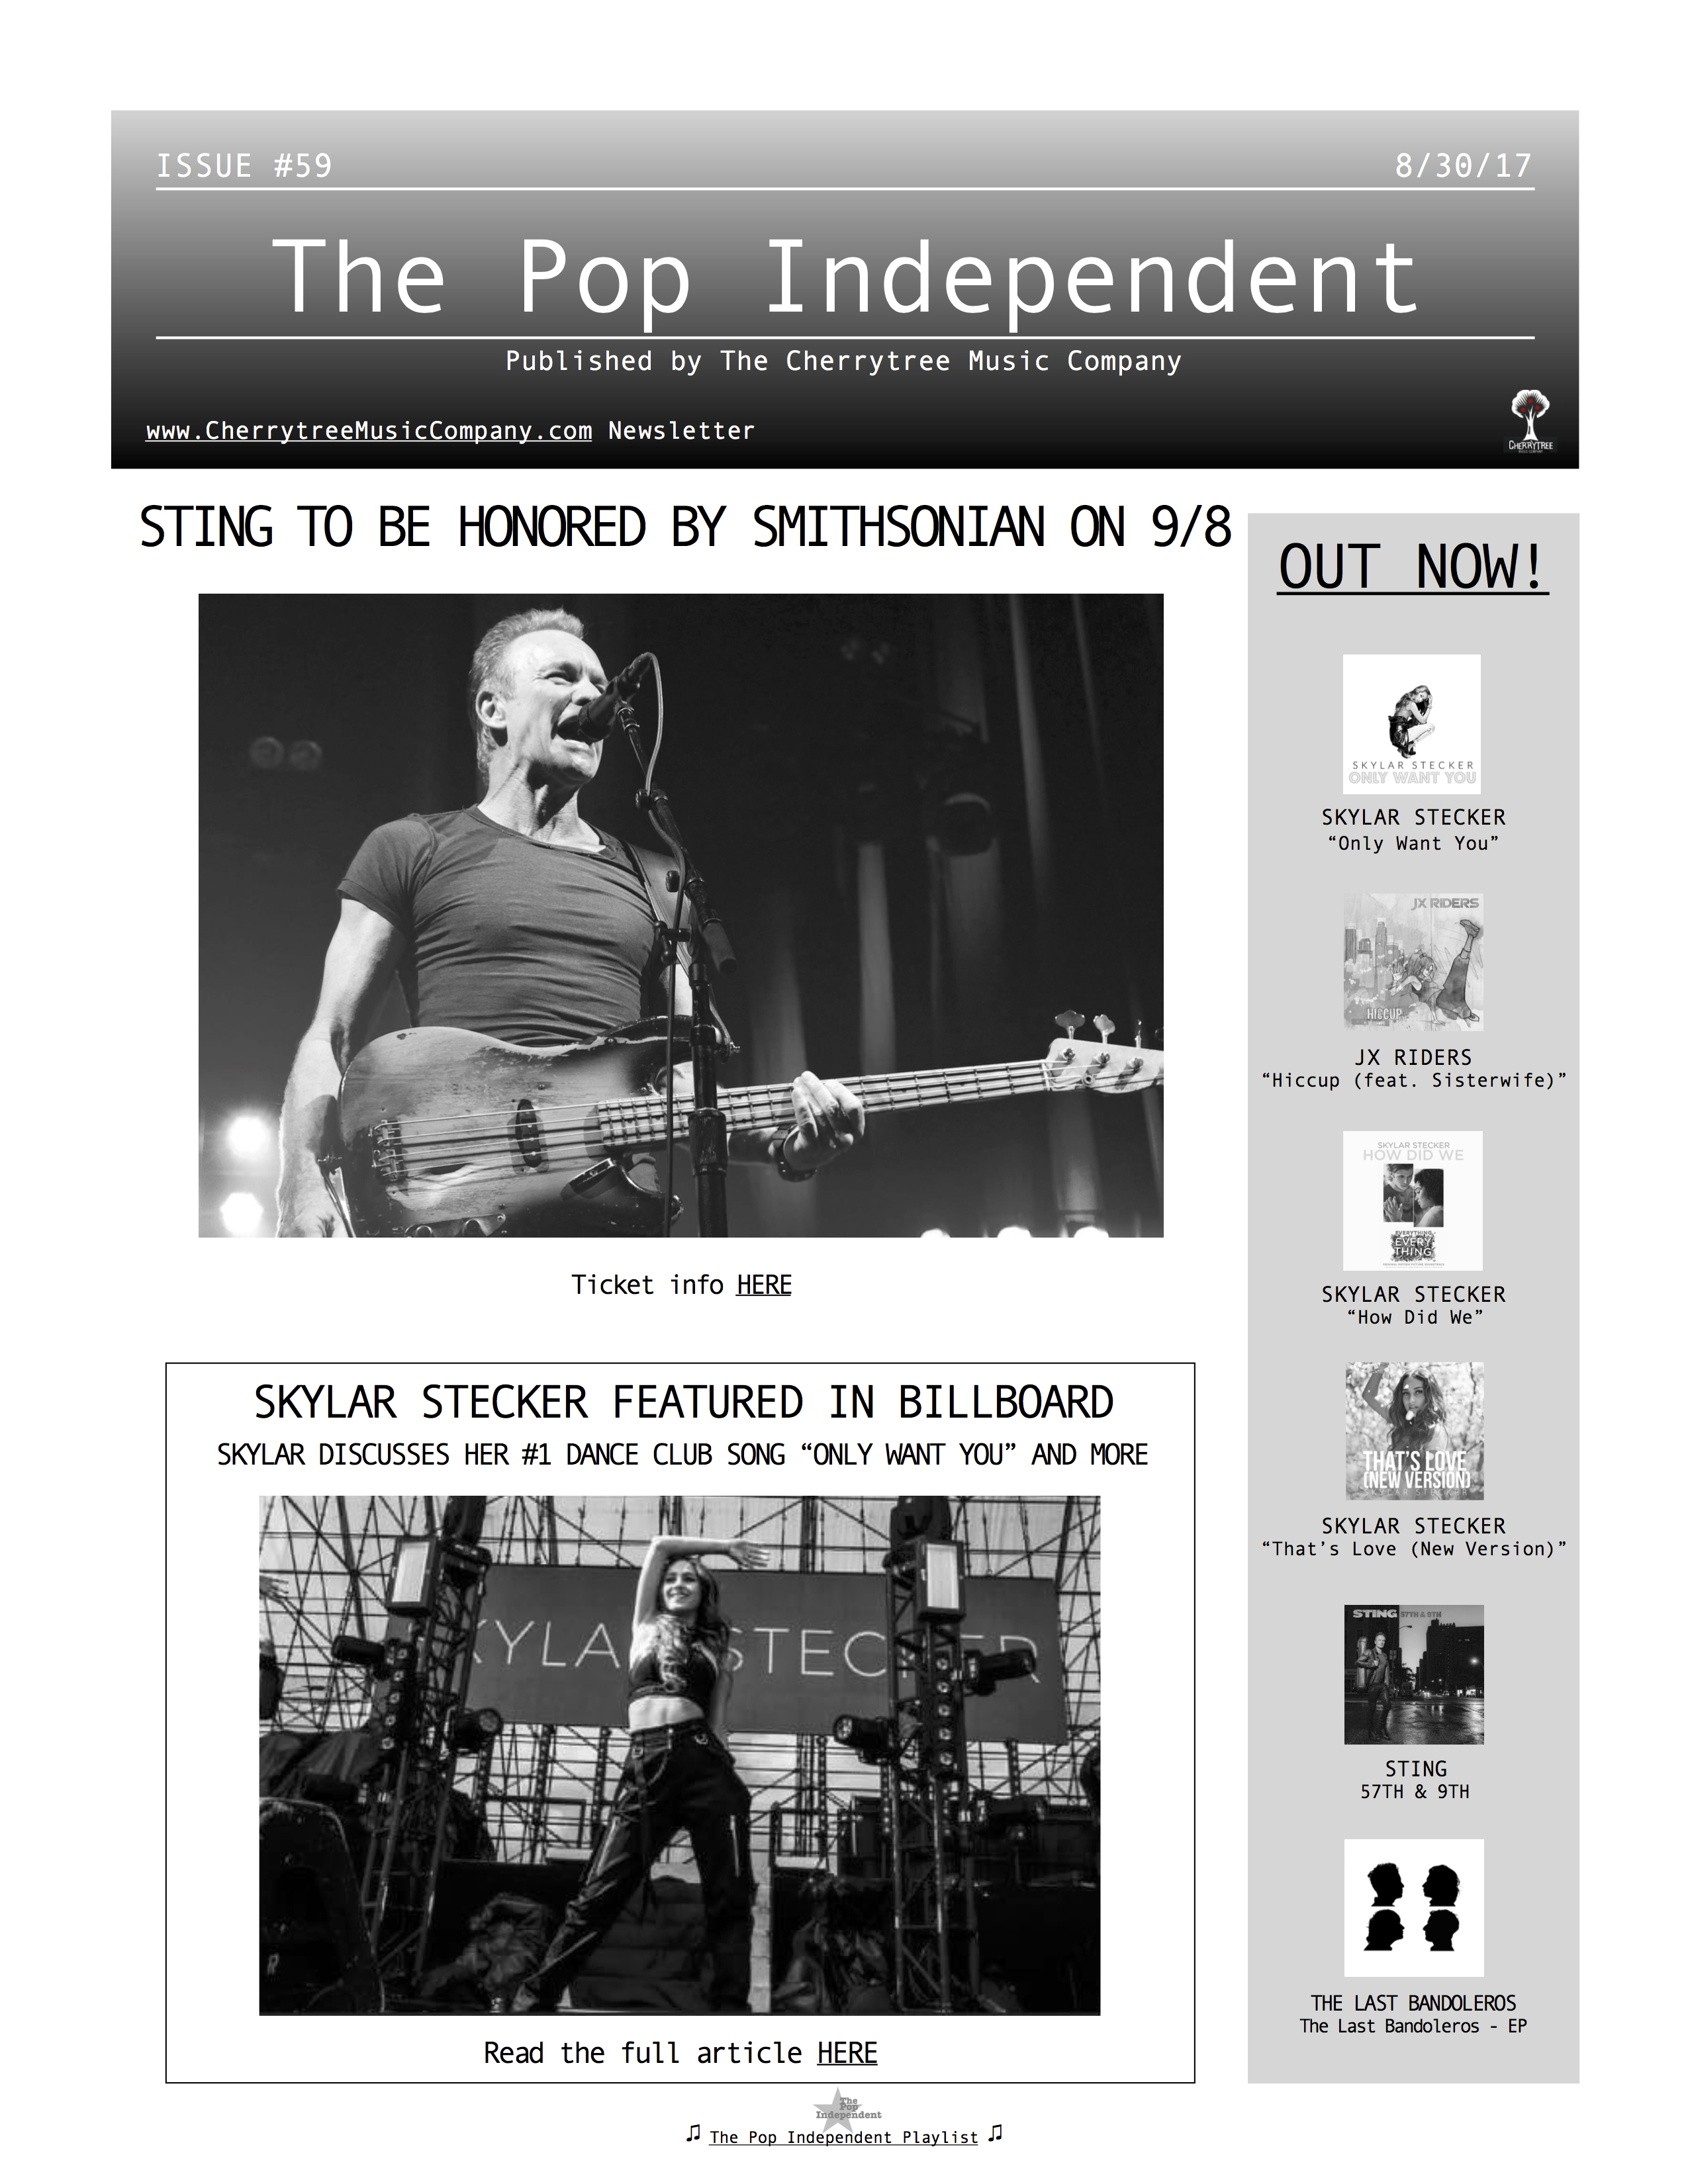 The Pop Independent, issue 59